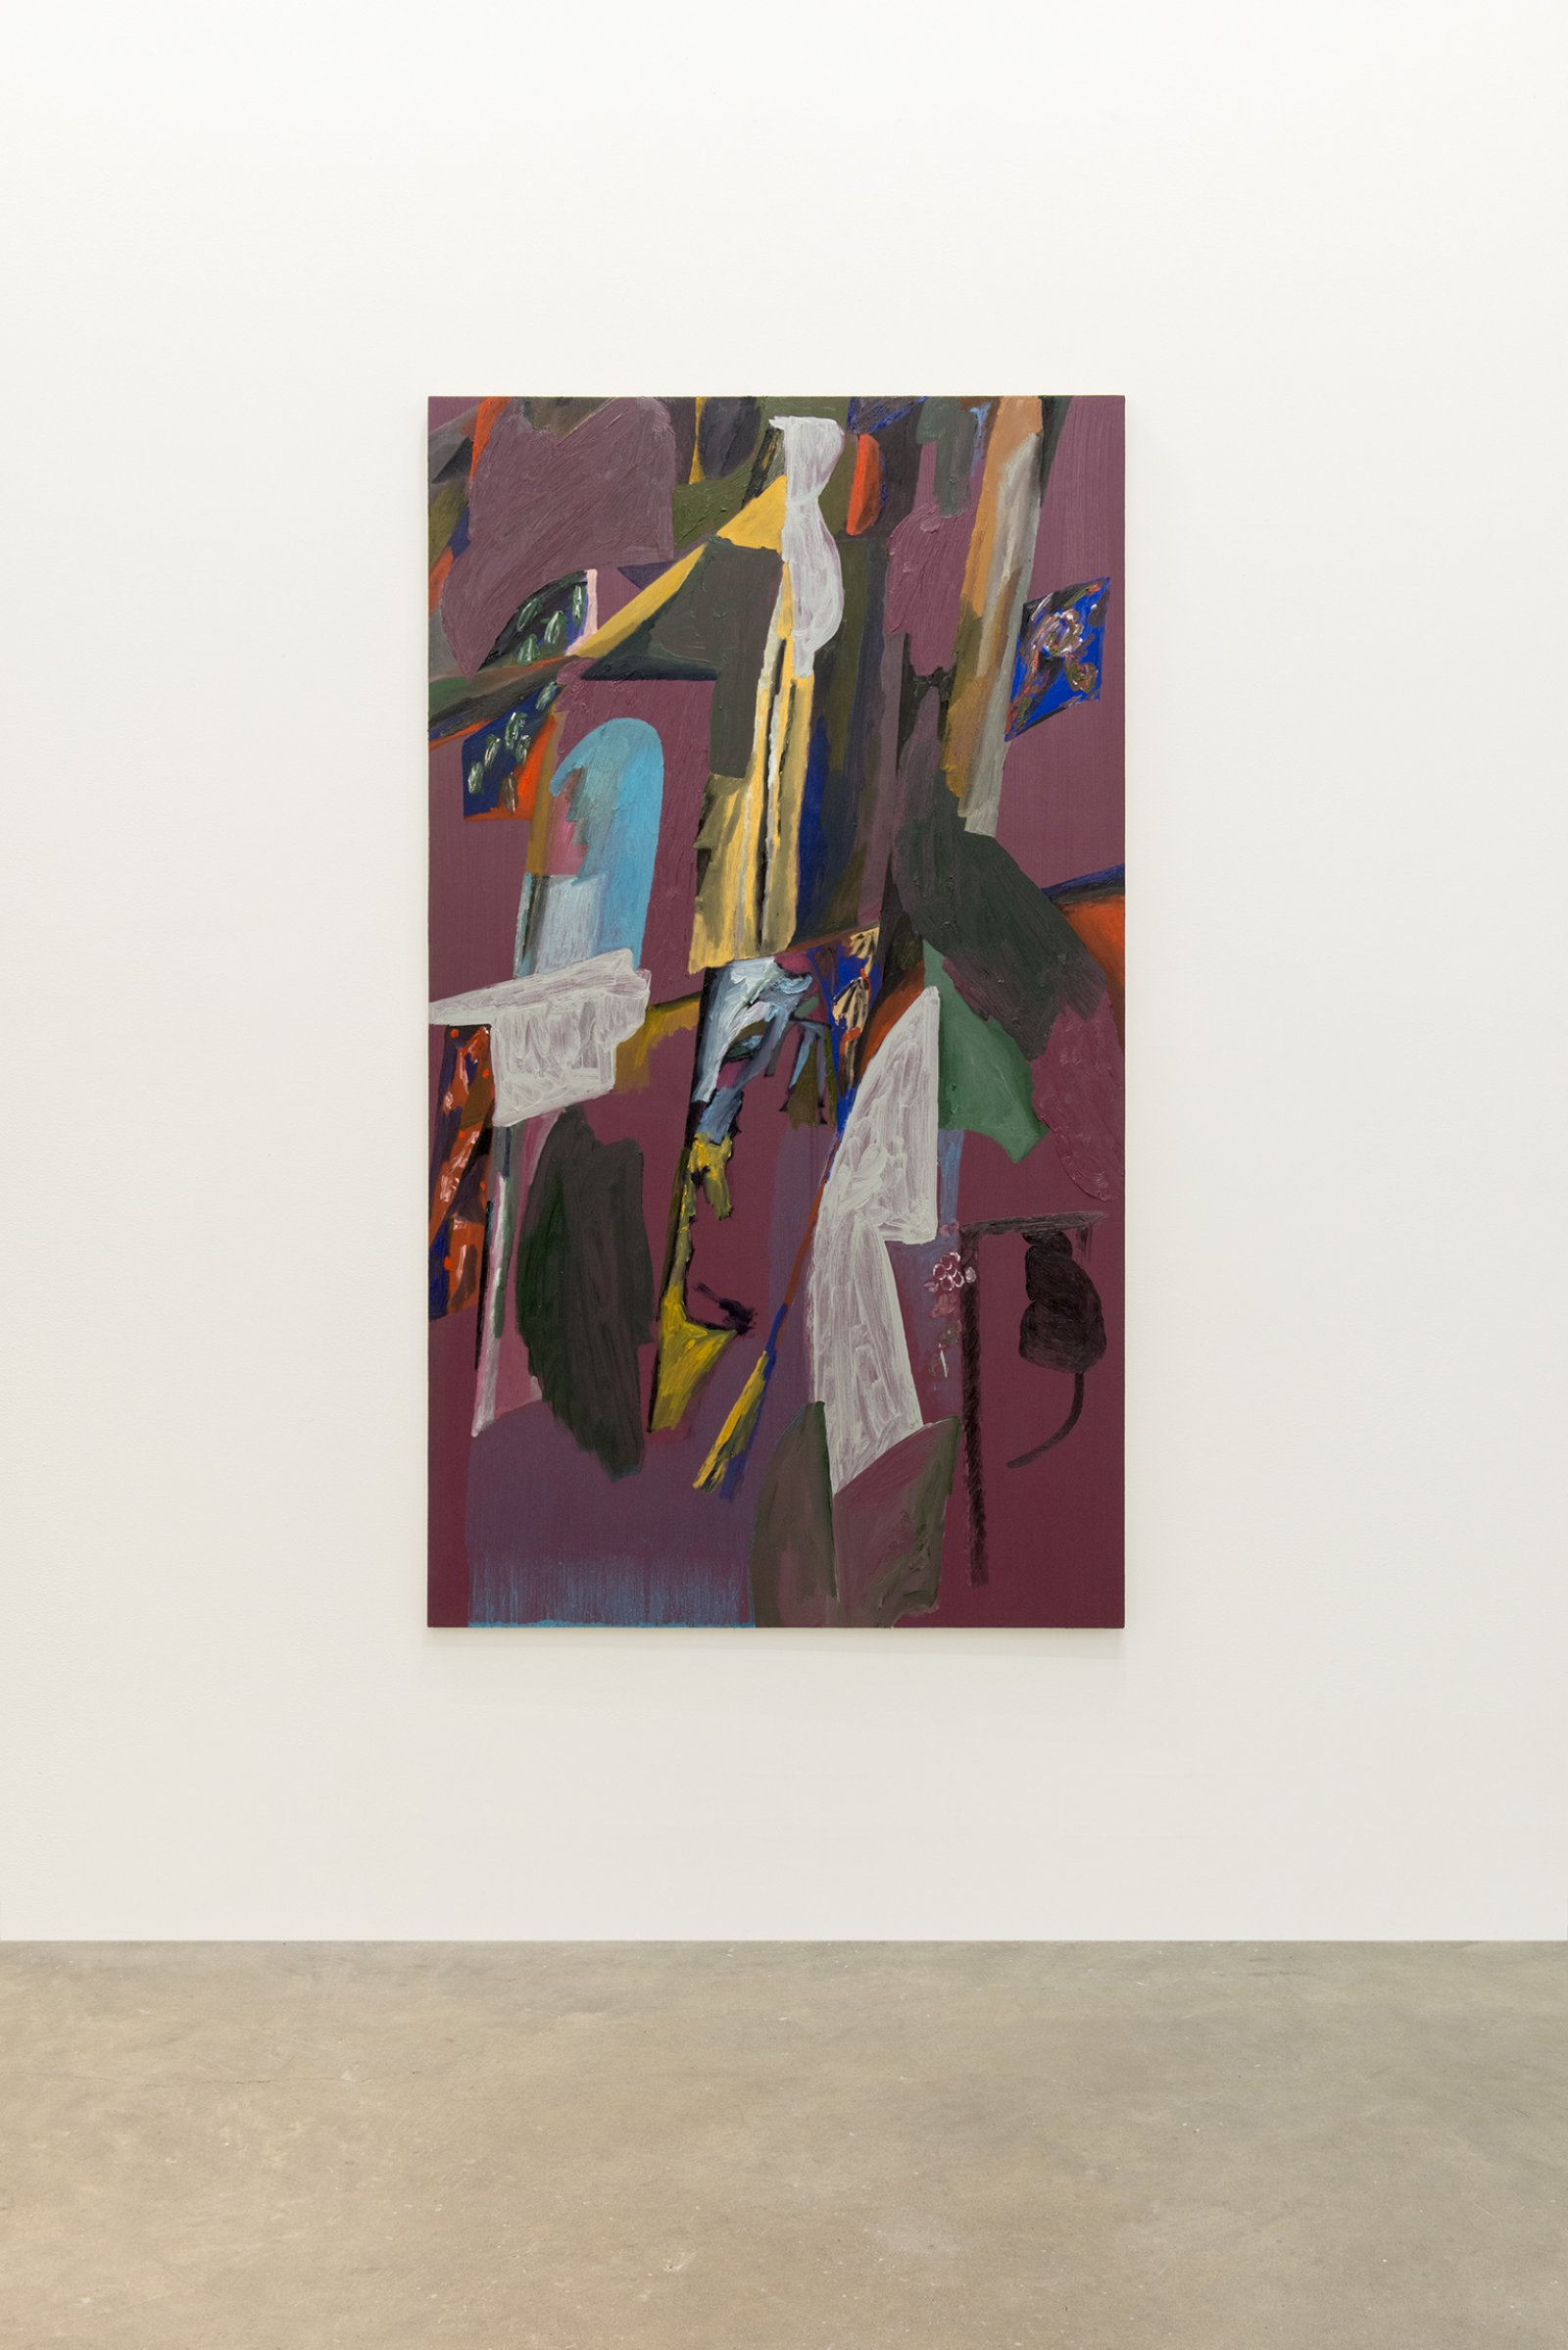 Rebecca Brewer, The Screens, 2014, oil on panel, 69 x 38 in. (174 x 97 cm)